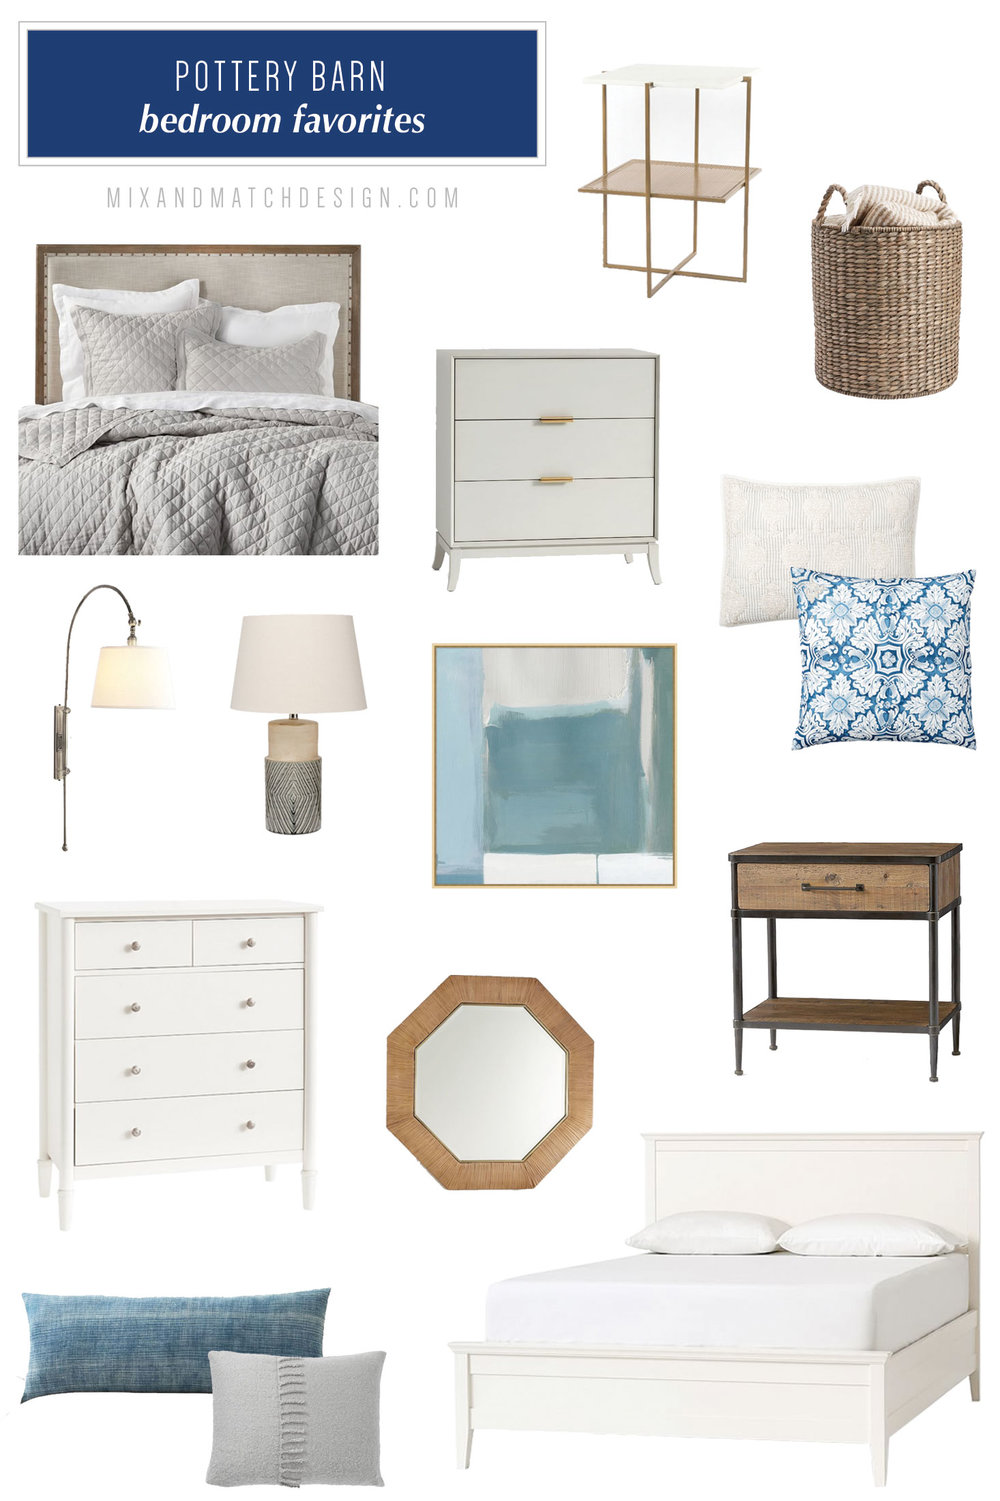 Pottery Barn is one of my favorite places to shop for farmhouse, industrial, and classic furniture and decor, and I've rounded up a bunch of my favorites for your bedroom to share with you! // #designerfinds #interiordesign #decor #farmhousestyle #modernfarmhouse #decorating